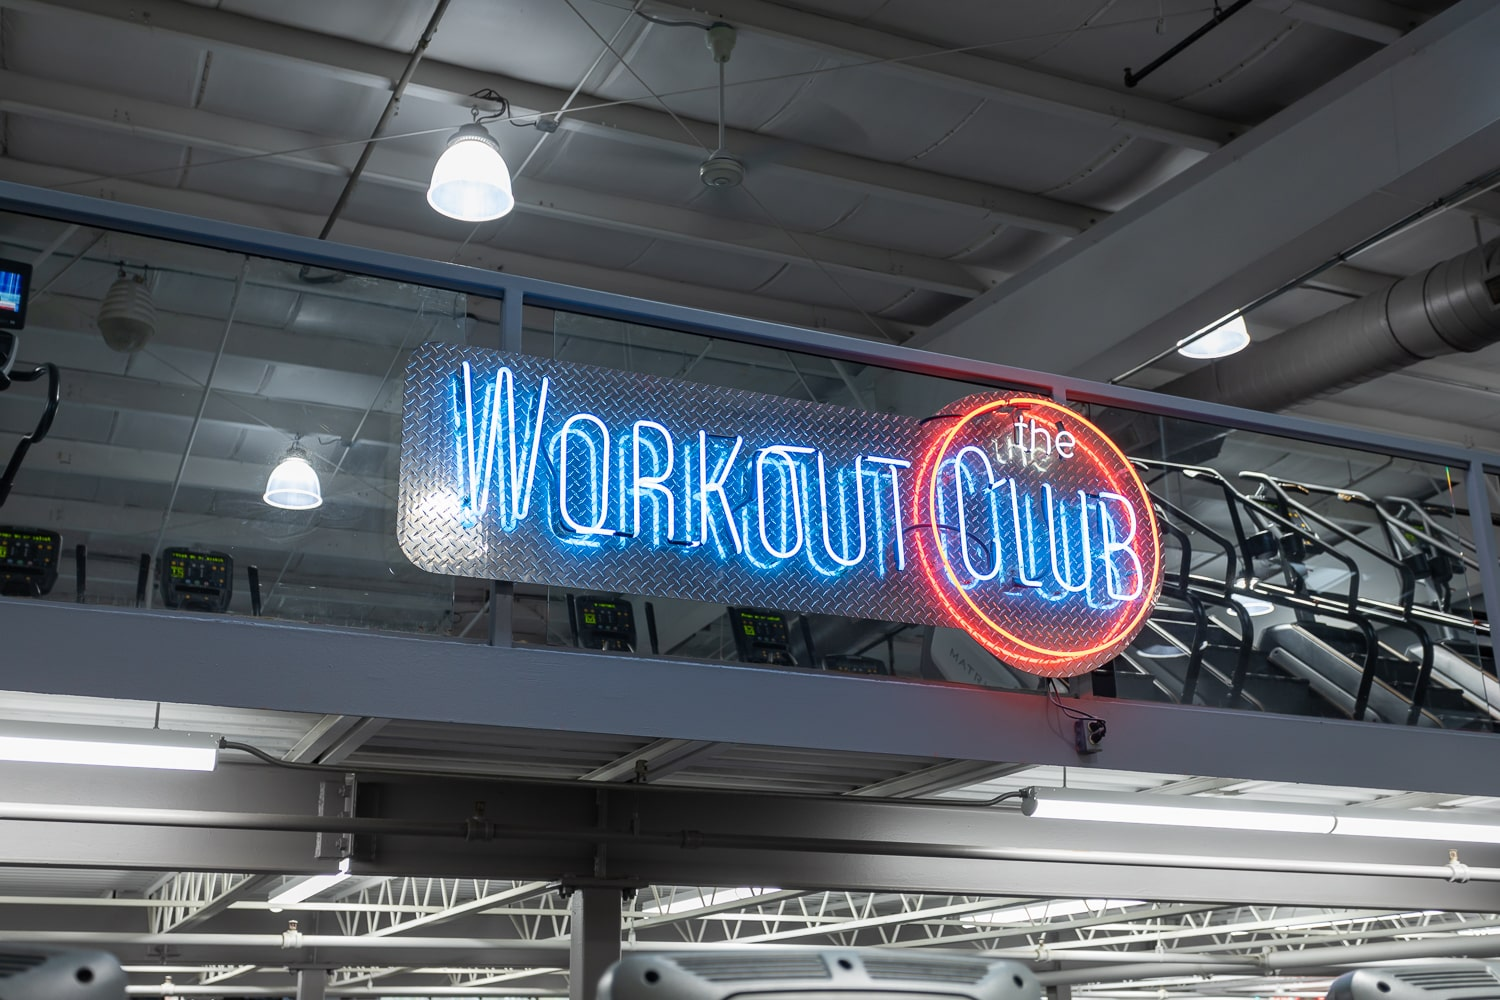 Workout Club in Londonderry